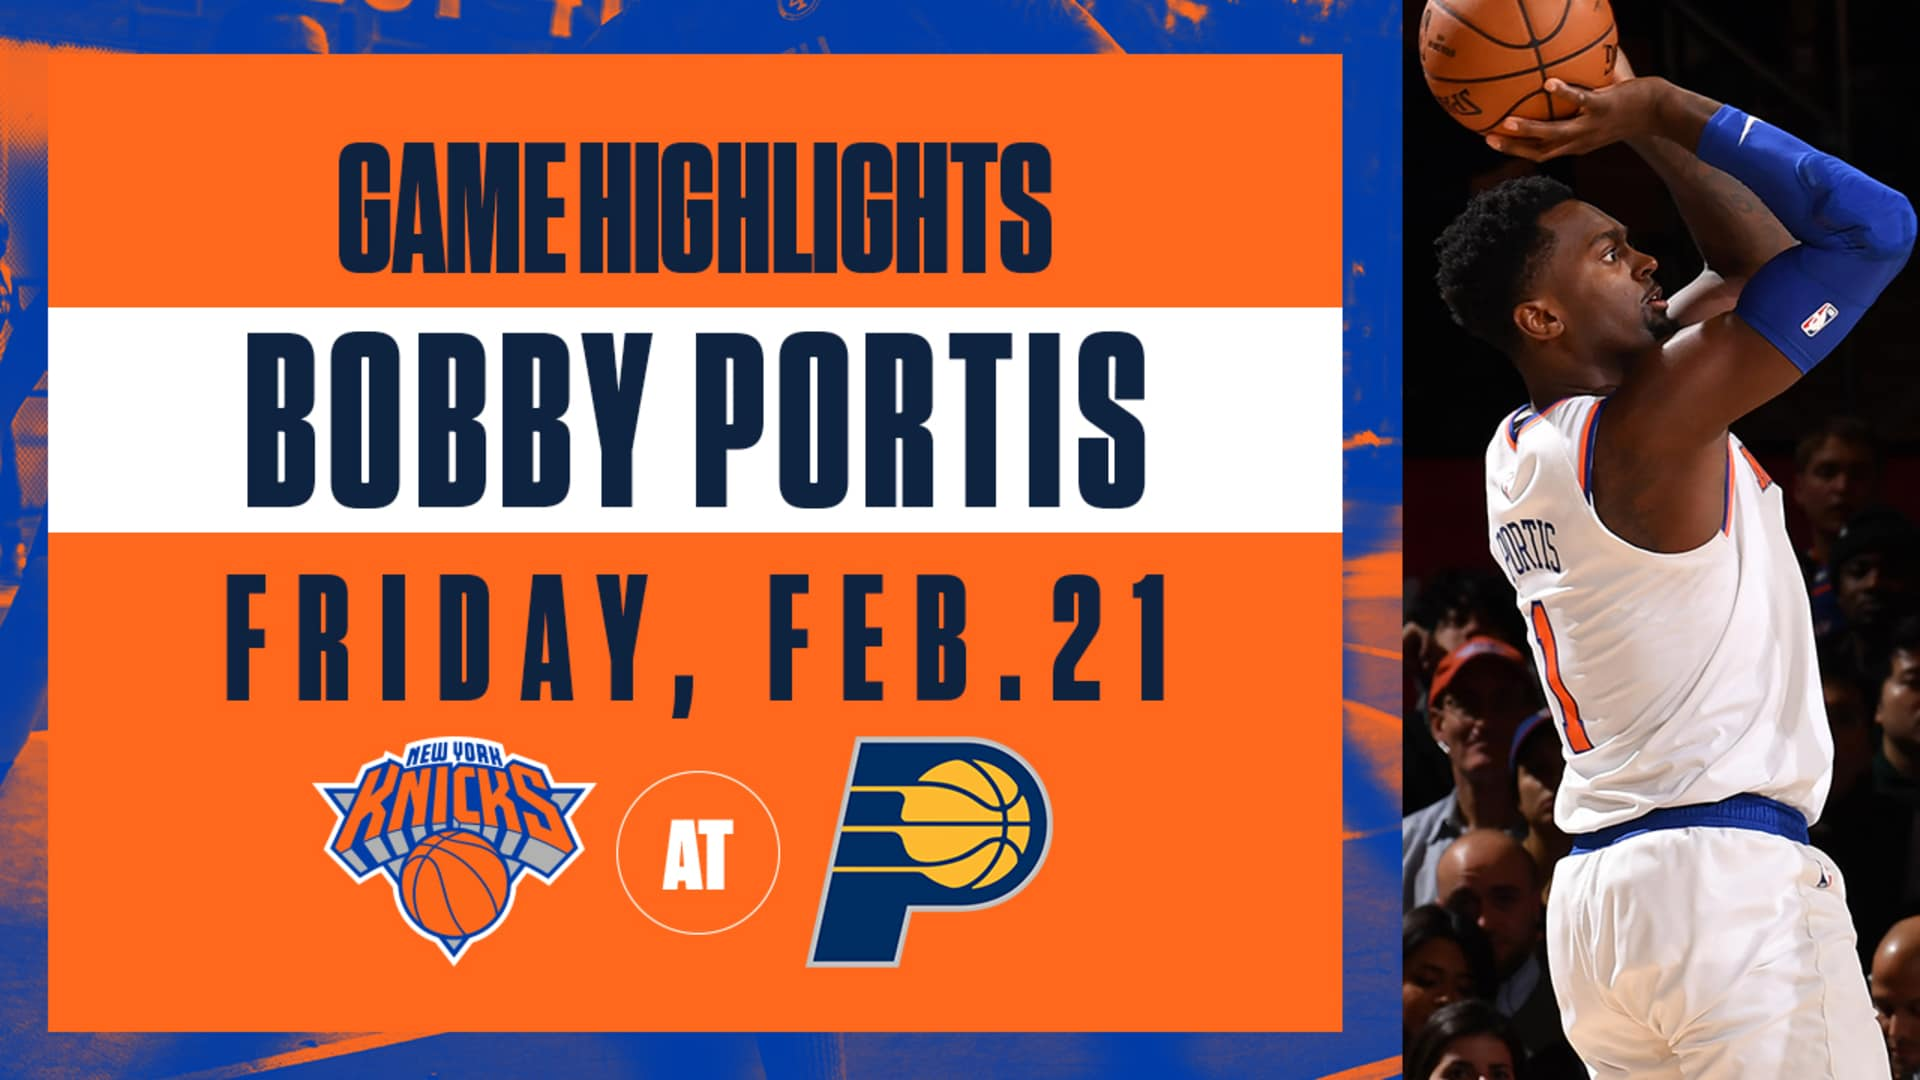 Highlights: Bobby Portis (19 Points) | Knicks vs. Pacers